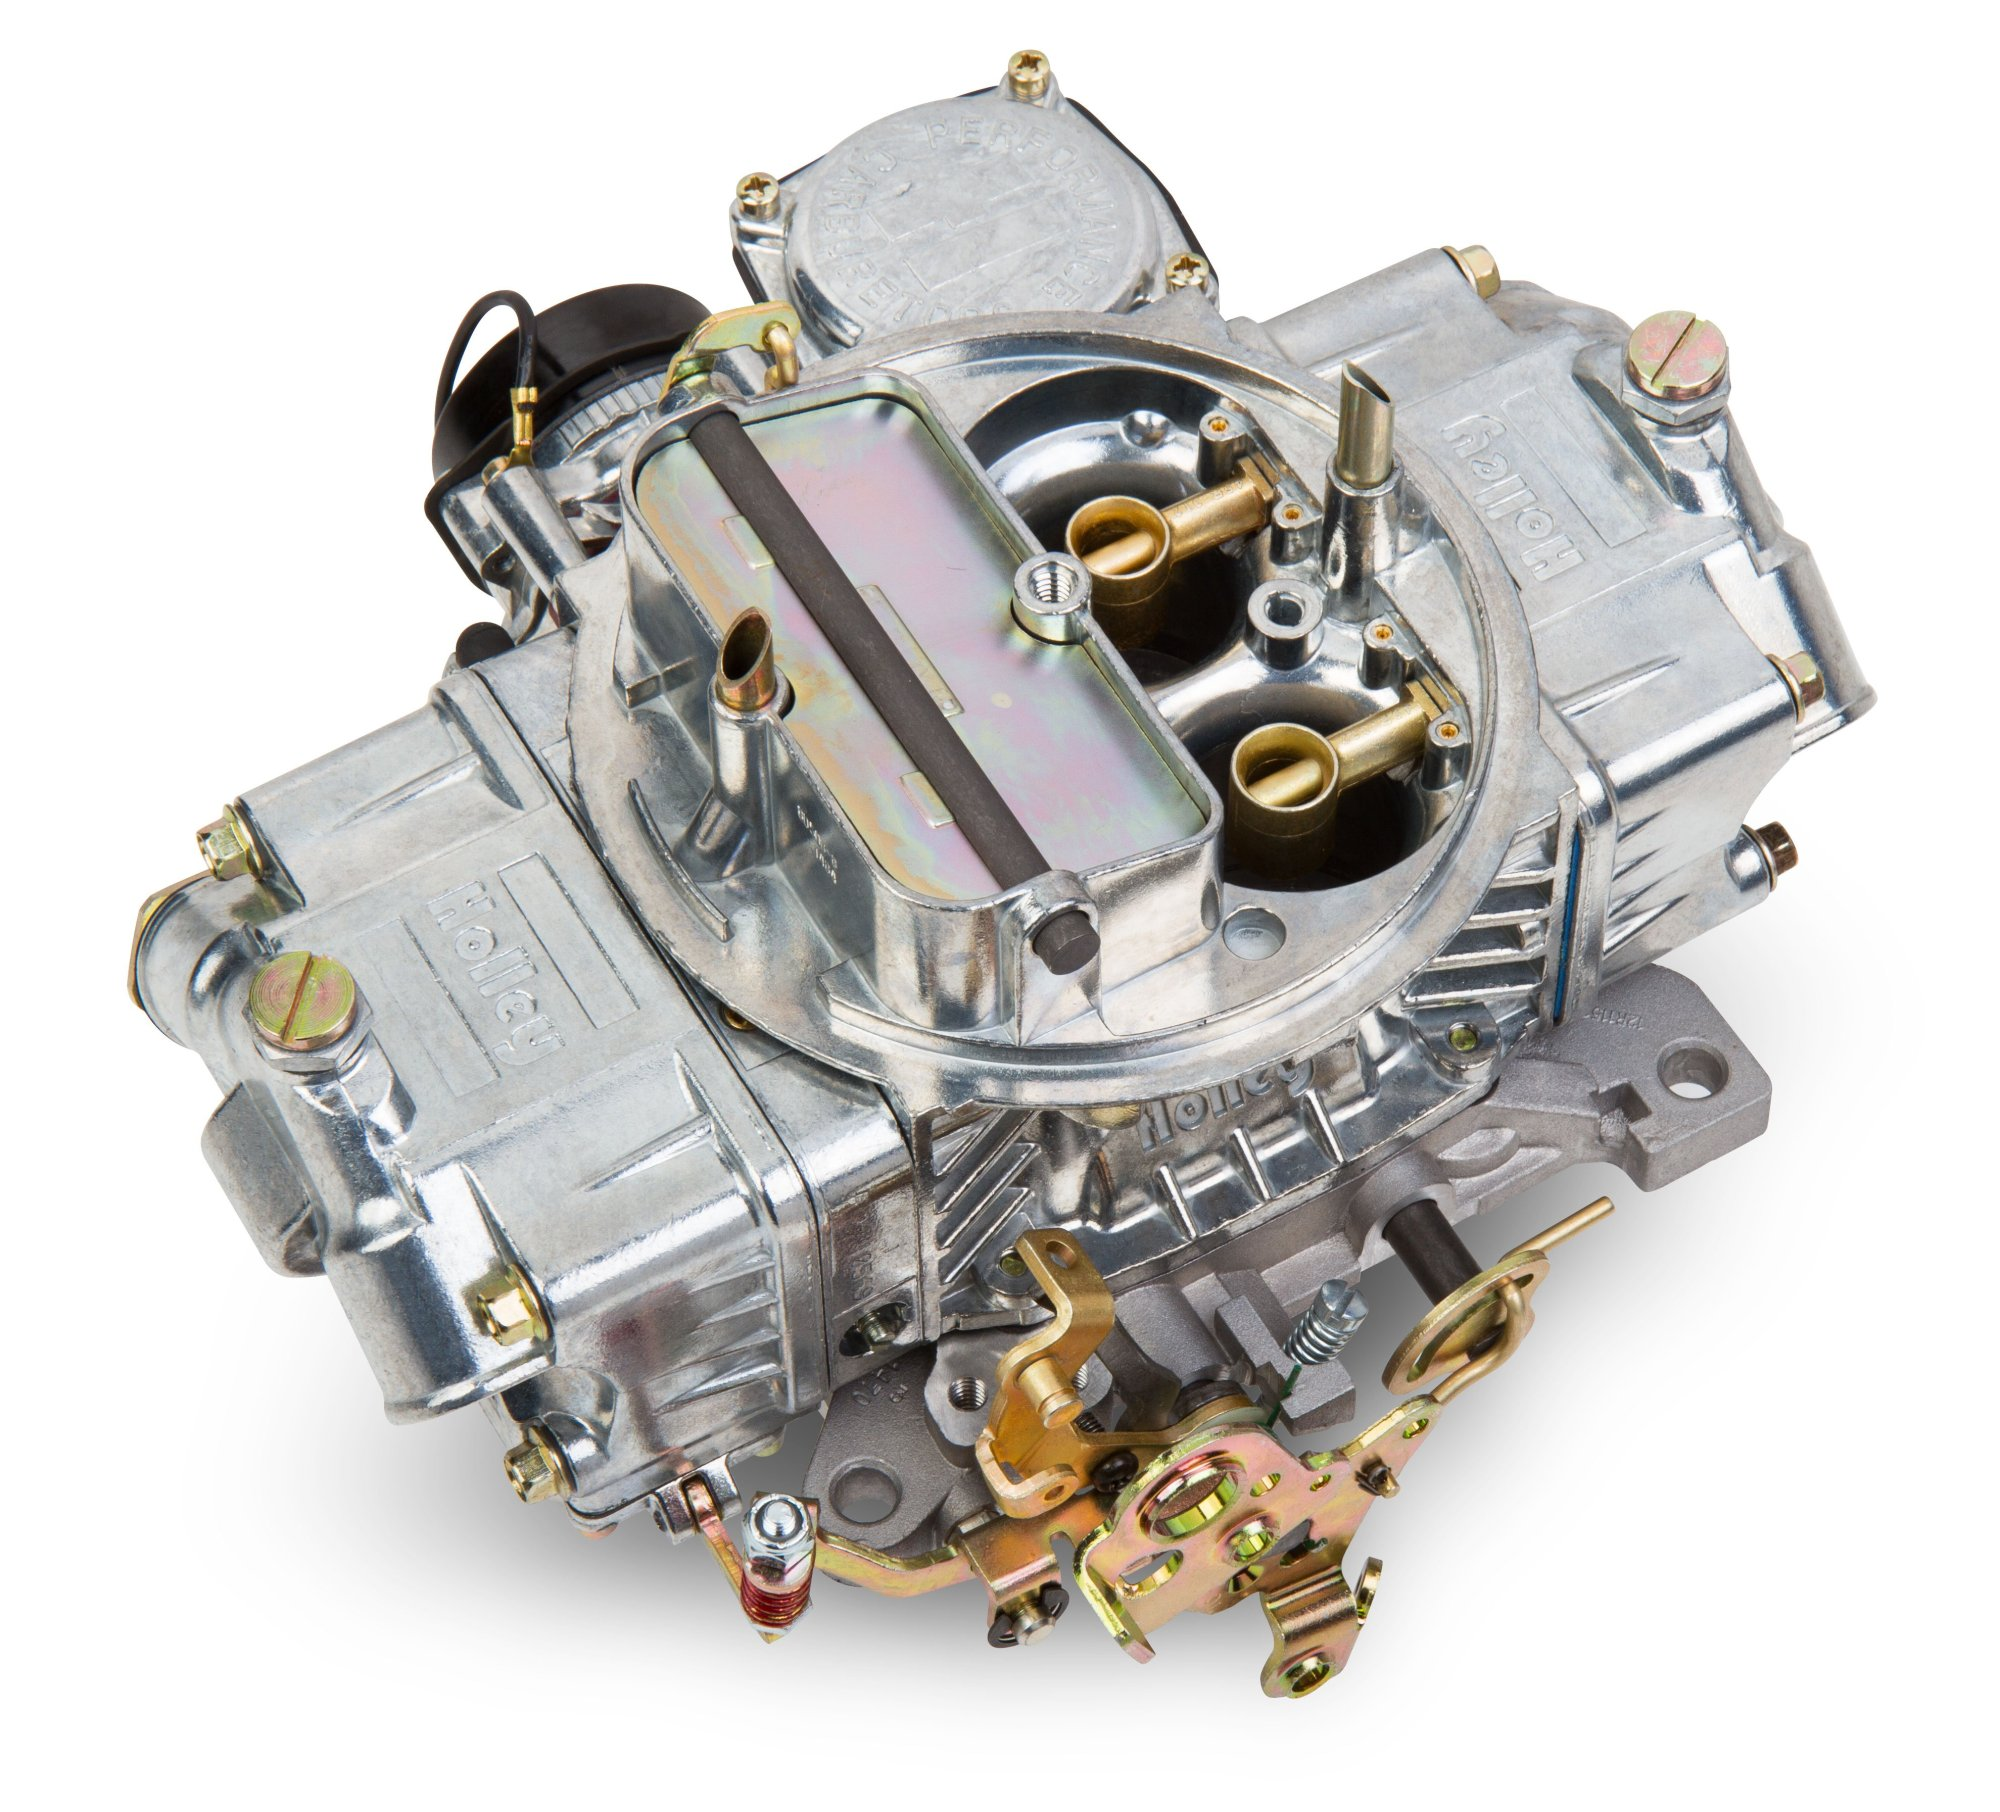 hight resolution of 0 80508s 750 cfm classic holley carburetor image